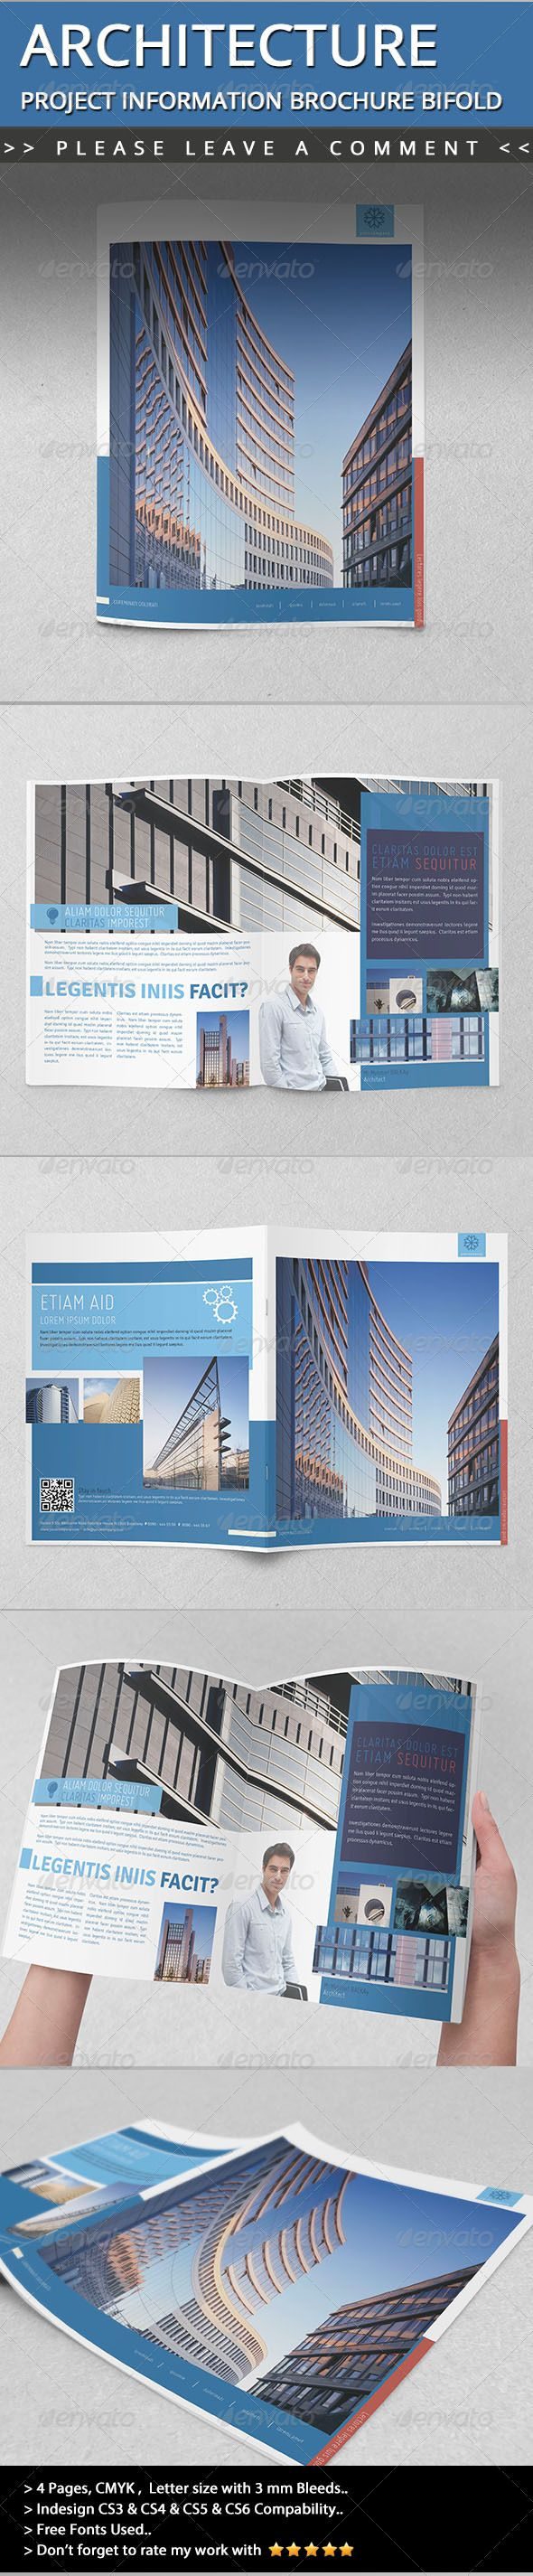 Architecture Project Information Brochure Bifold Informational